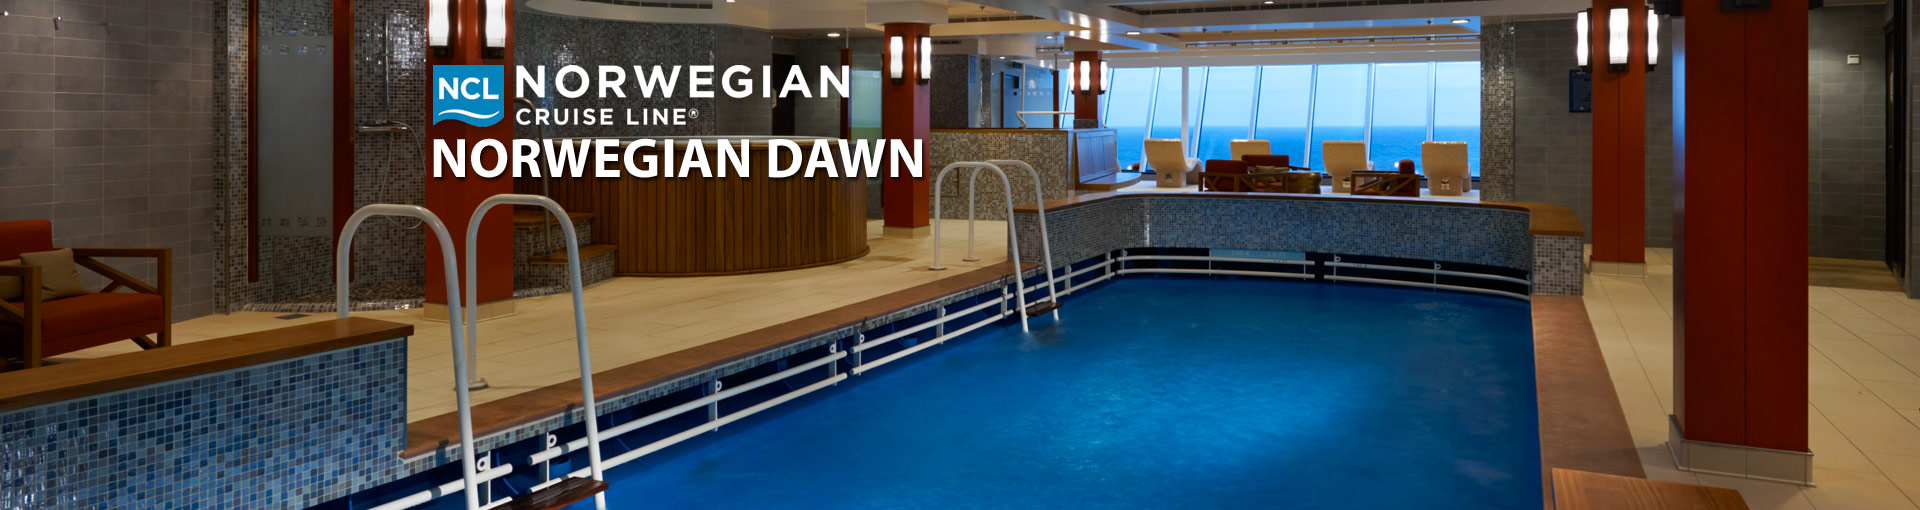 Norwegian Dawn Cruise Ship 2017 And 2018 Norwegian Dawn Destinations Deals The Cruise Web